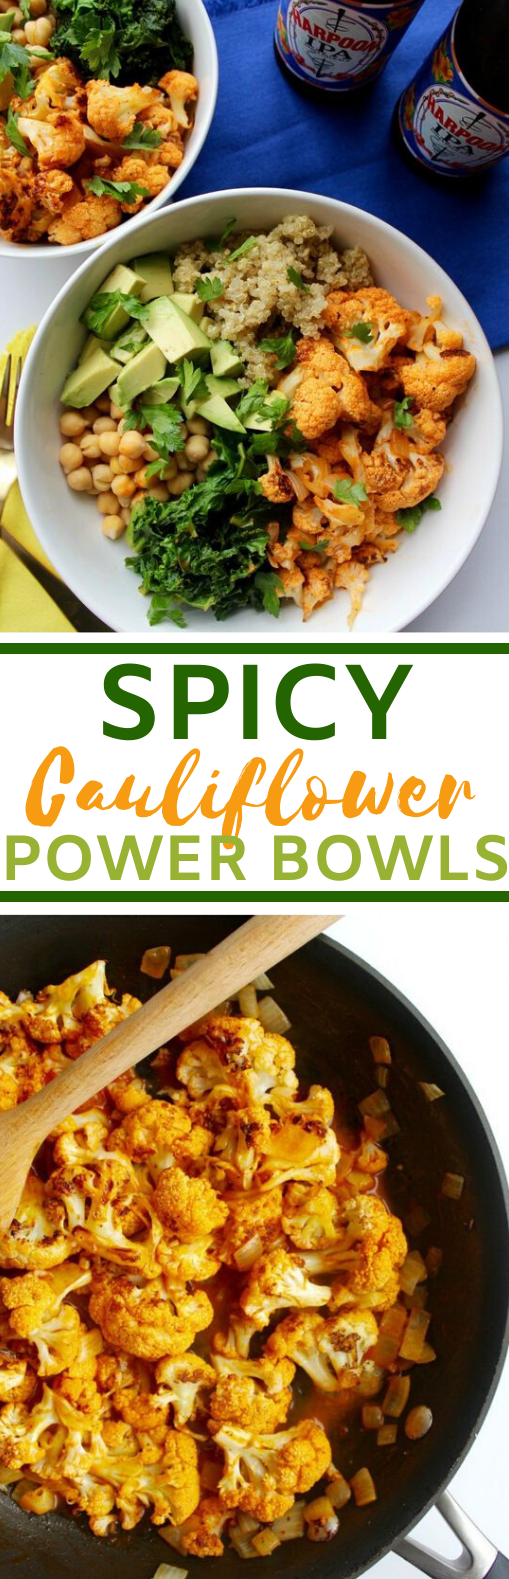 Spicy Cauliflower Power Bowl #vegan #healthy #dinner #plantbased #recipes